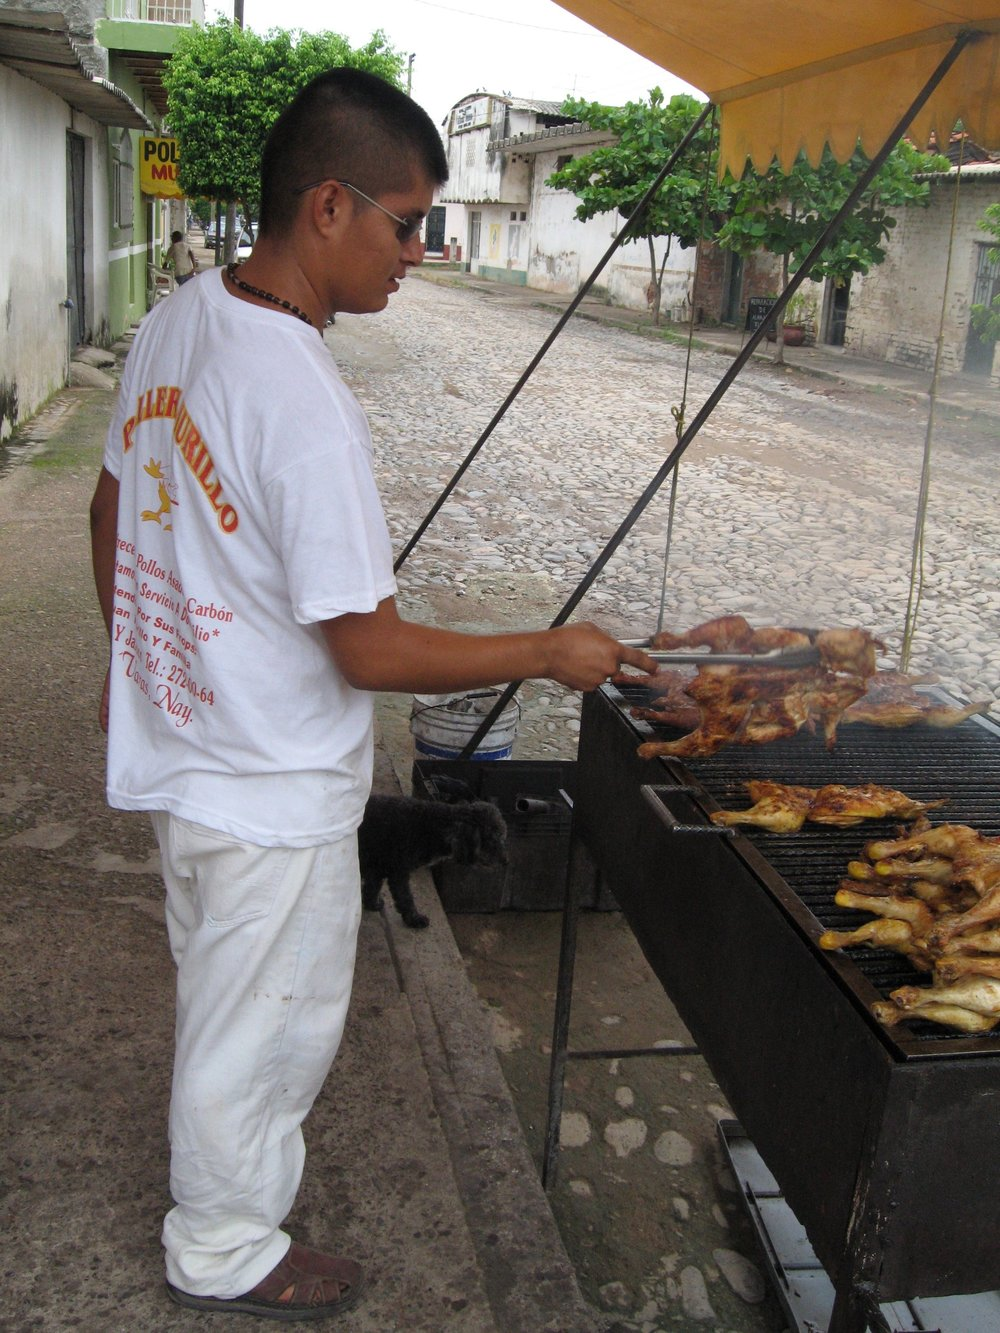 one of many grilled chicken stands in the surrounding towns.